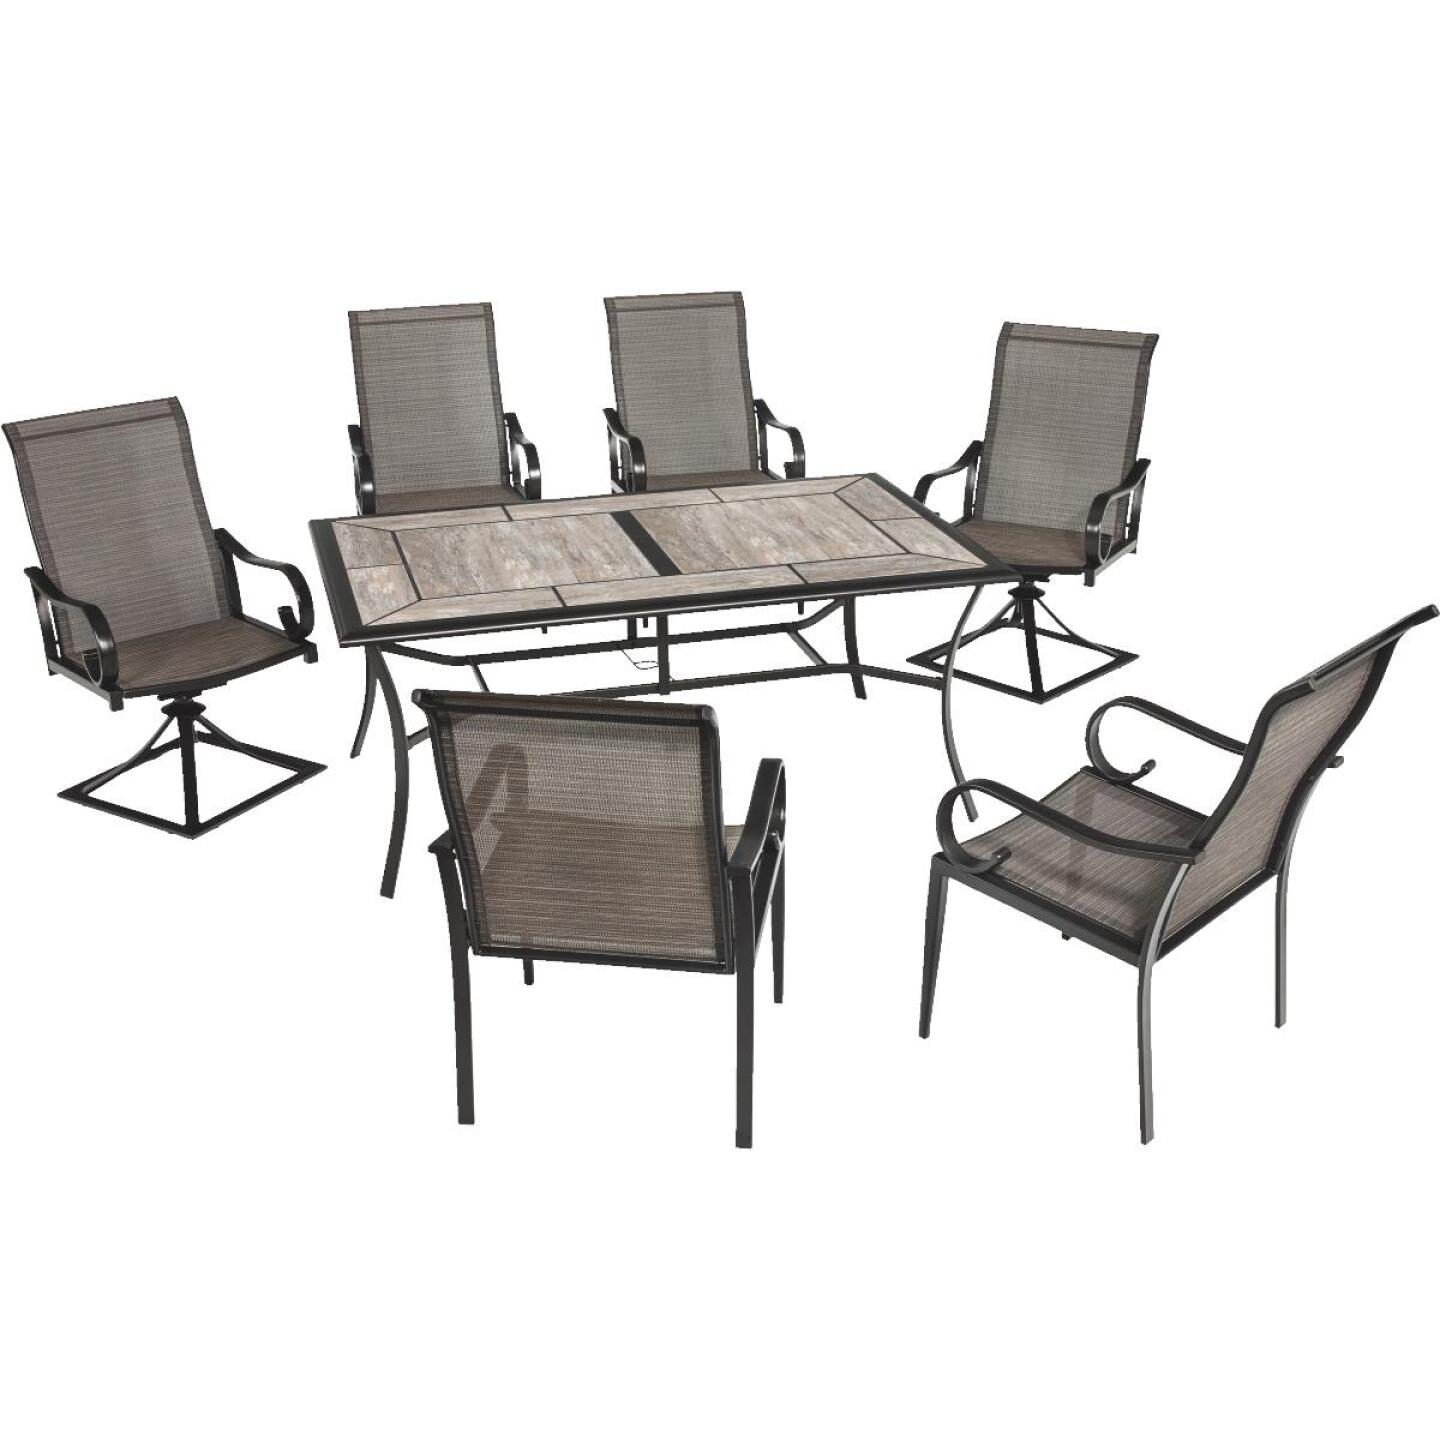 Outdoor Expressions Berkshire 7-Piece Dining Set Image 305